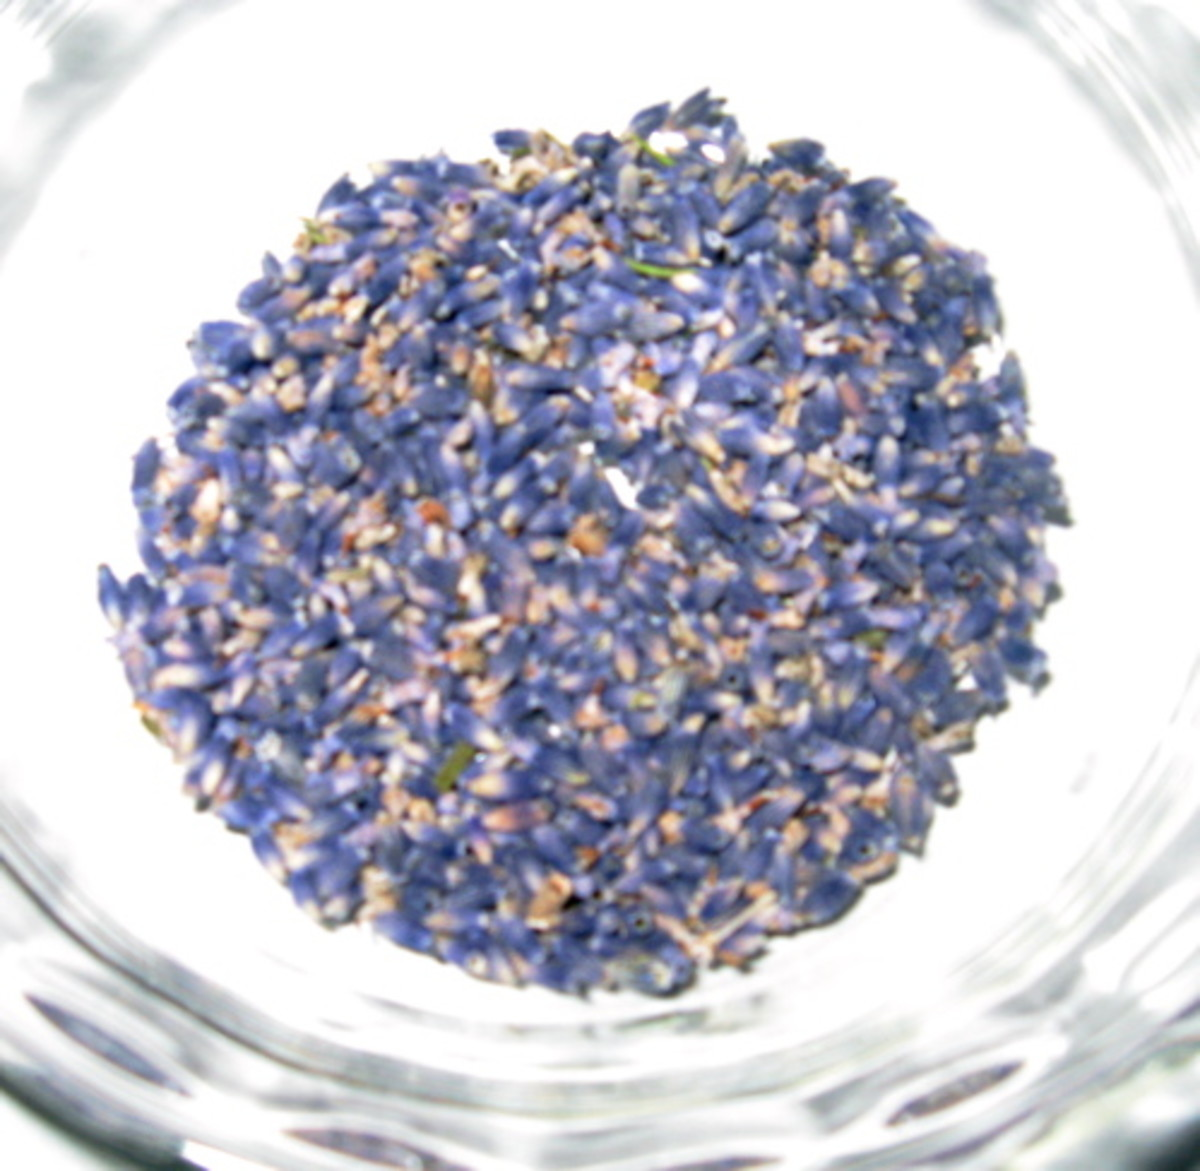 Culinary lavender / Photo by E. A. Wright